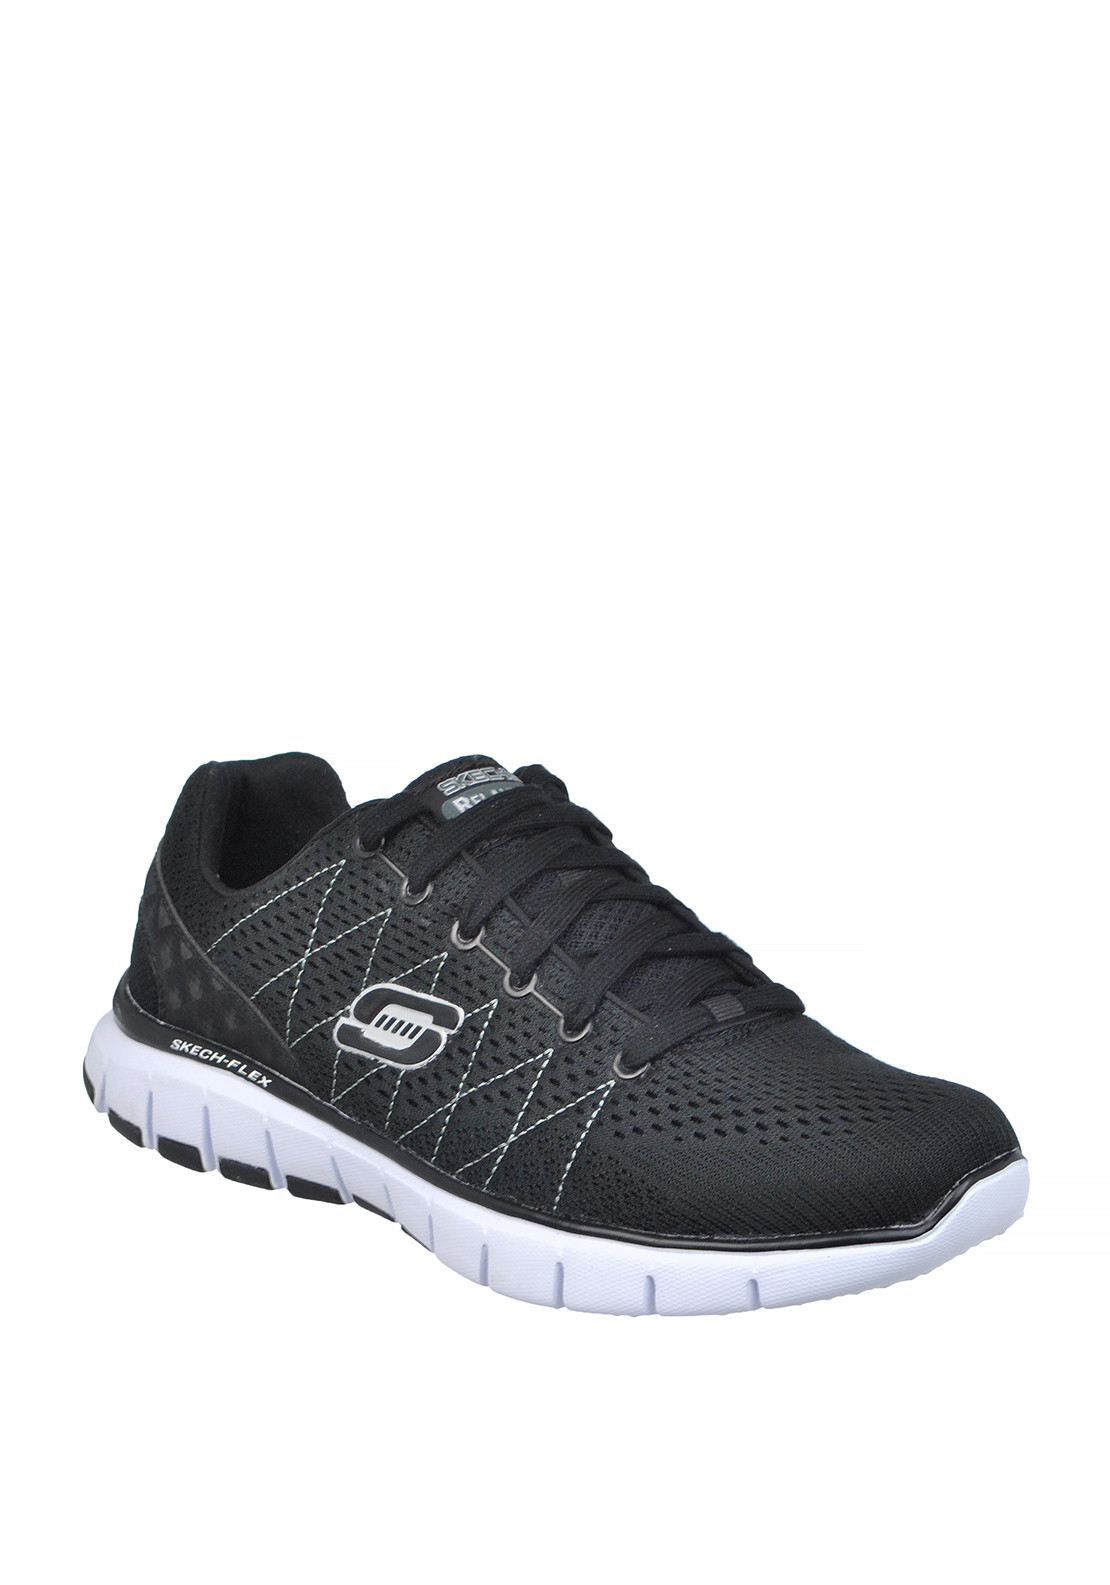 Skechers Mens Relaxed Fit Skech Flex Lace Up Trainer, Black